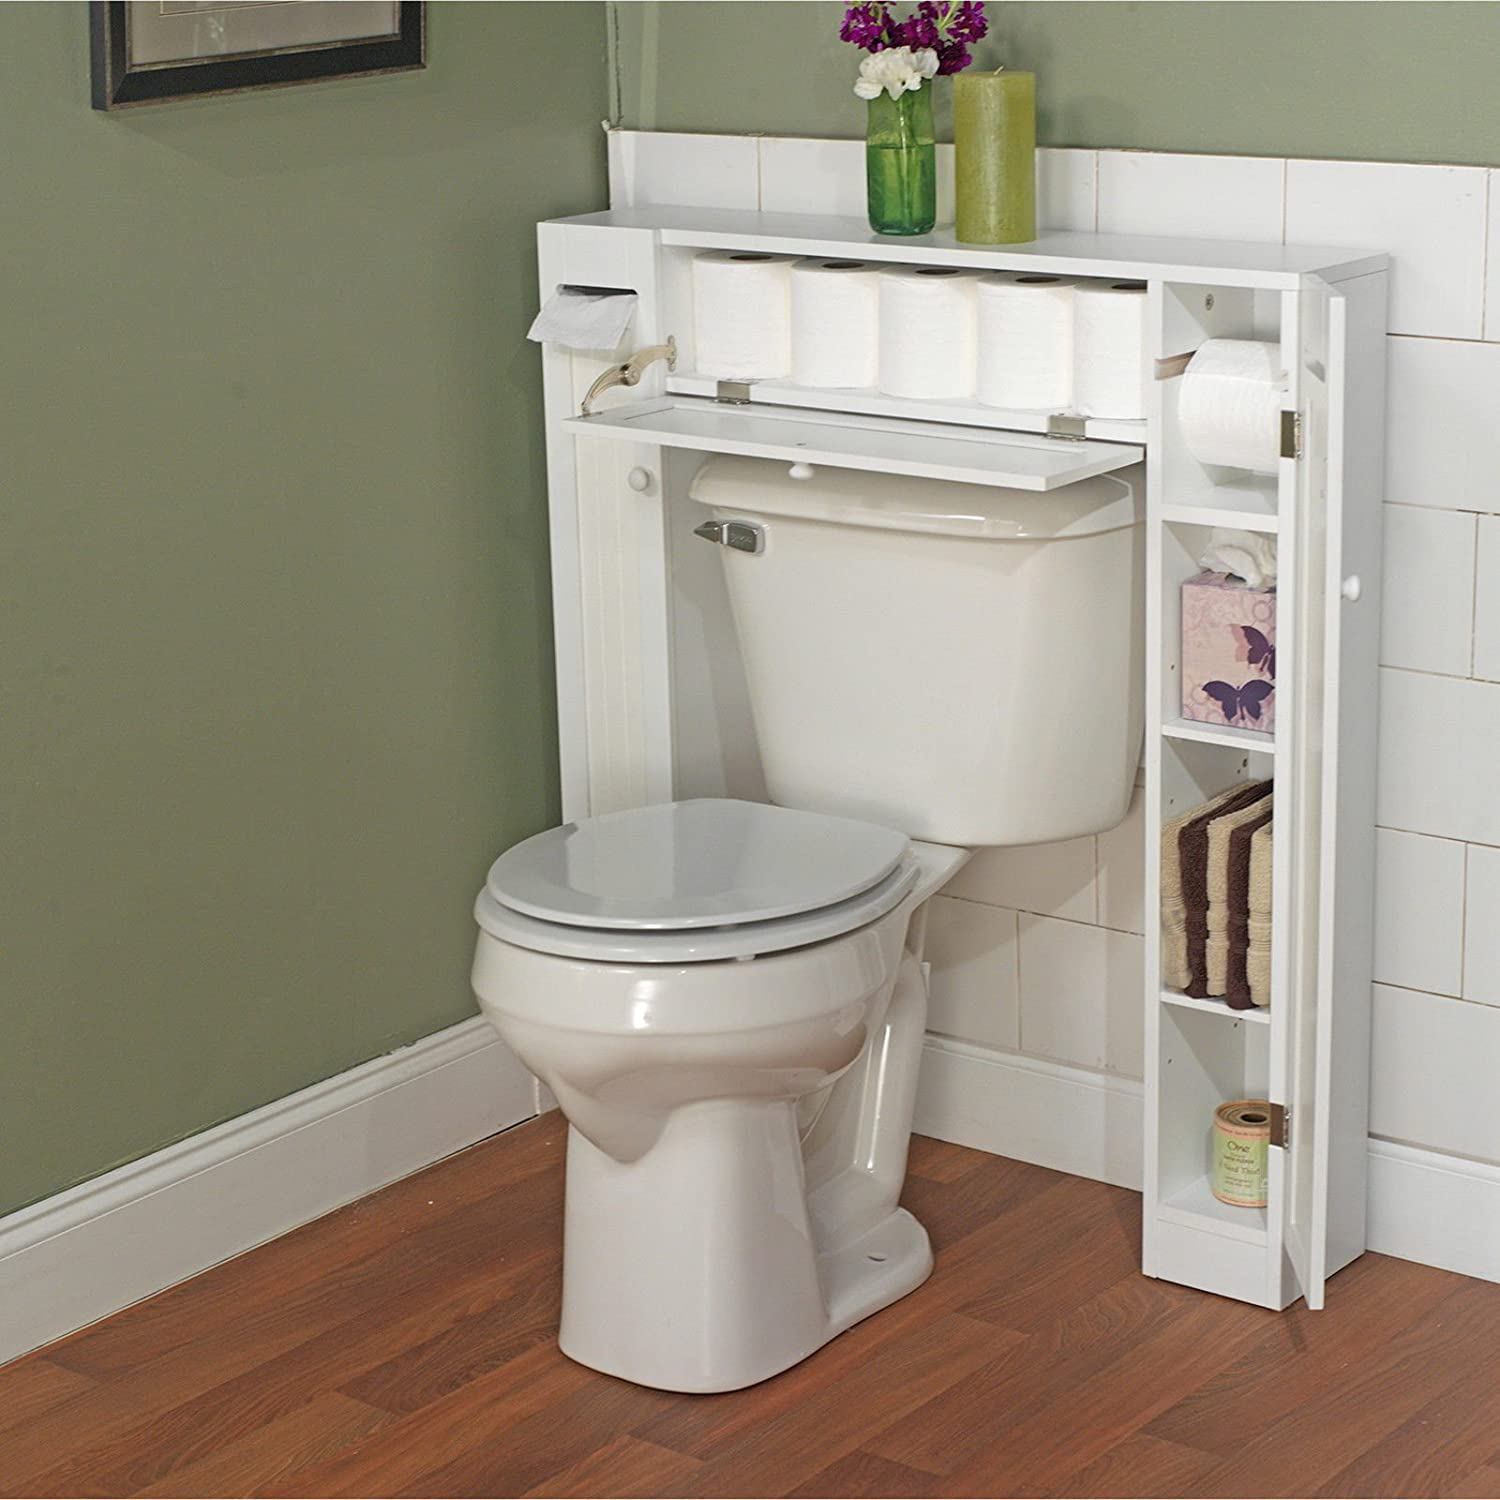 Over toilet cabinet storage bathroom home organizer shower for Bathroom cabinets above toilet